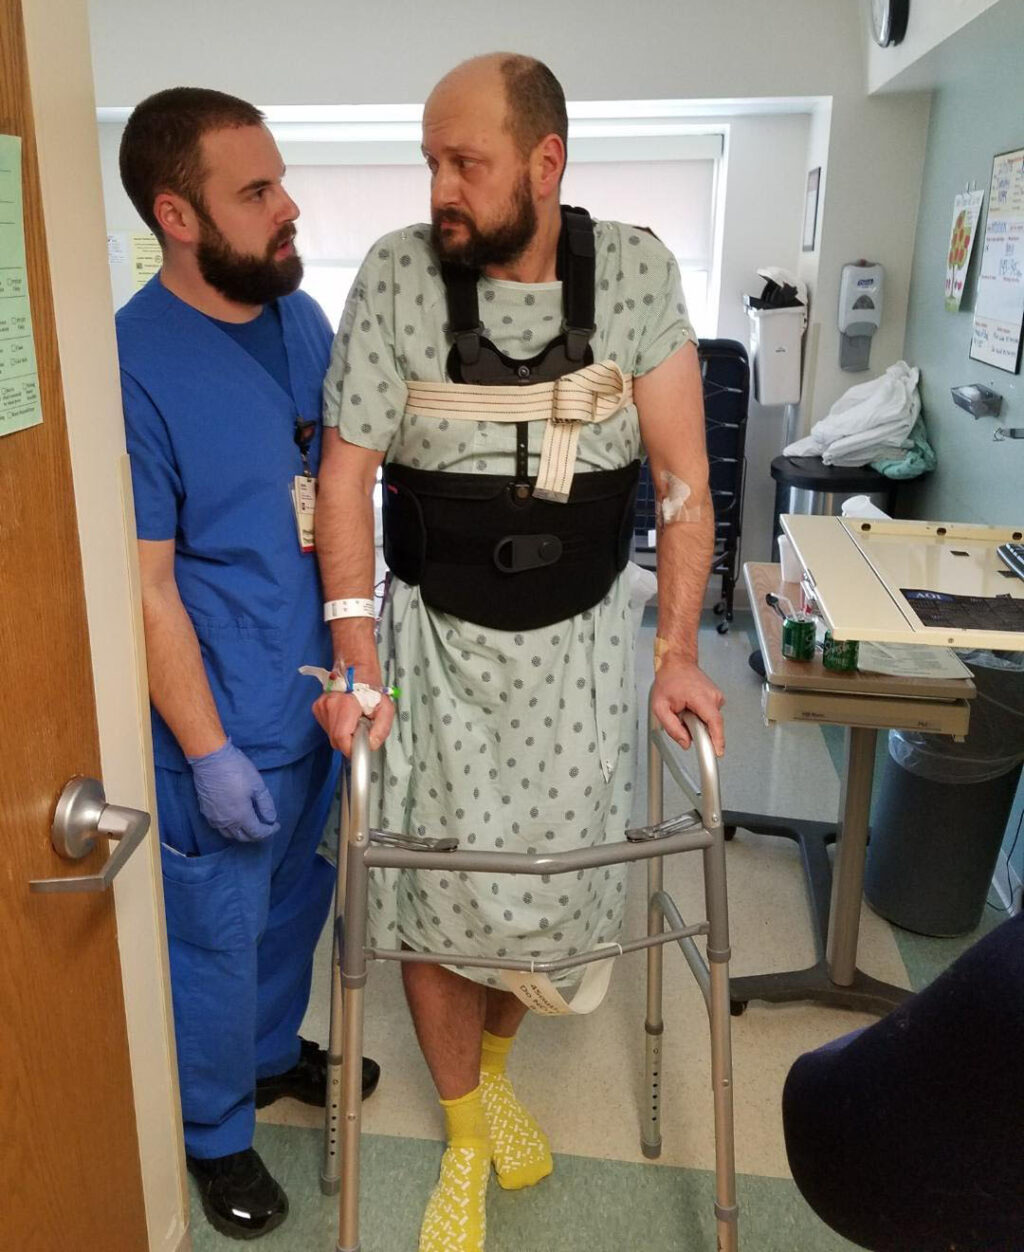 Andrew walking with the help of a walker and a physical therapist in a hospital room.